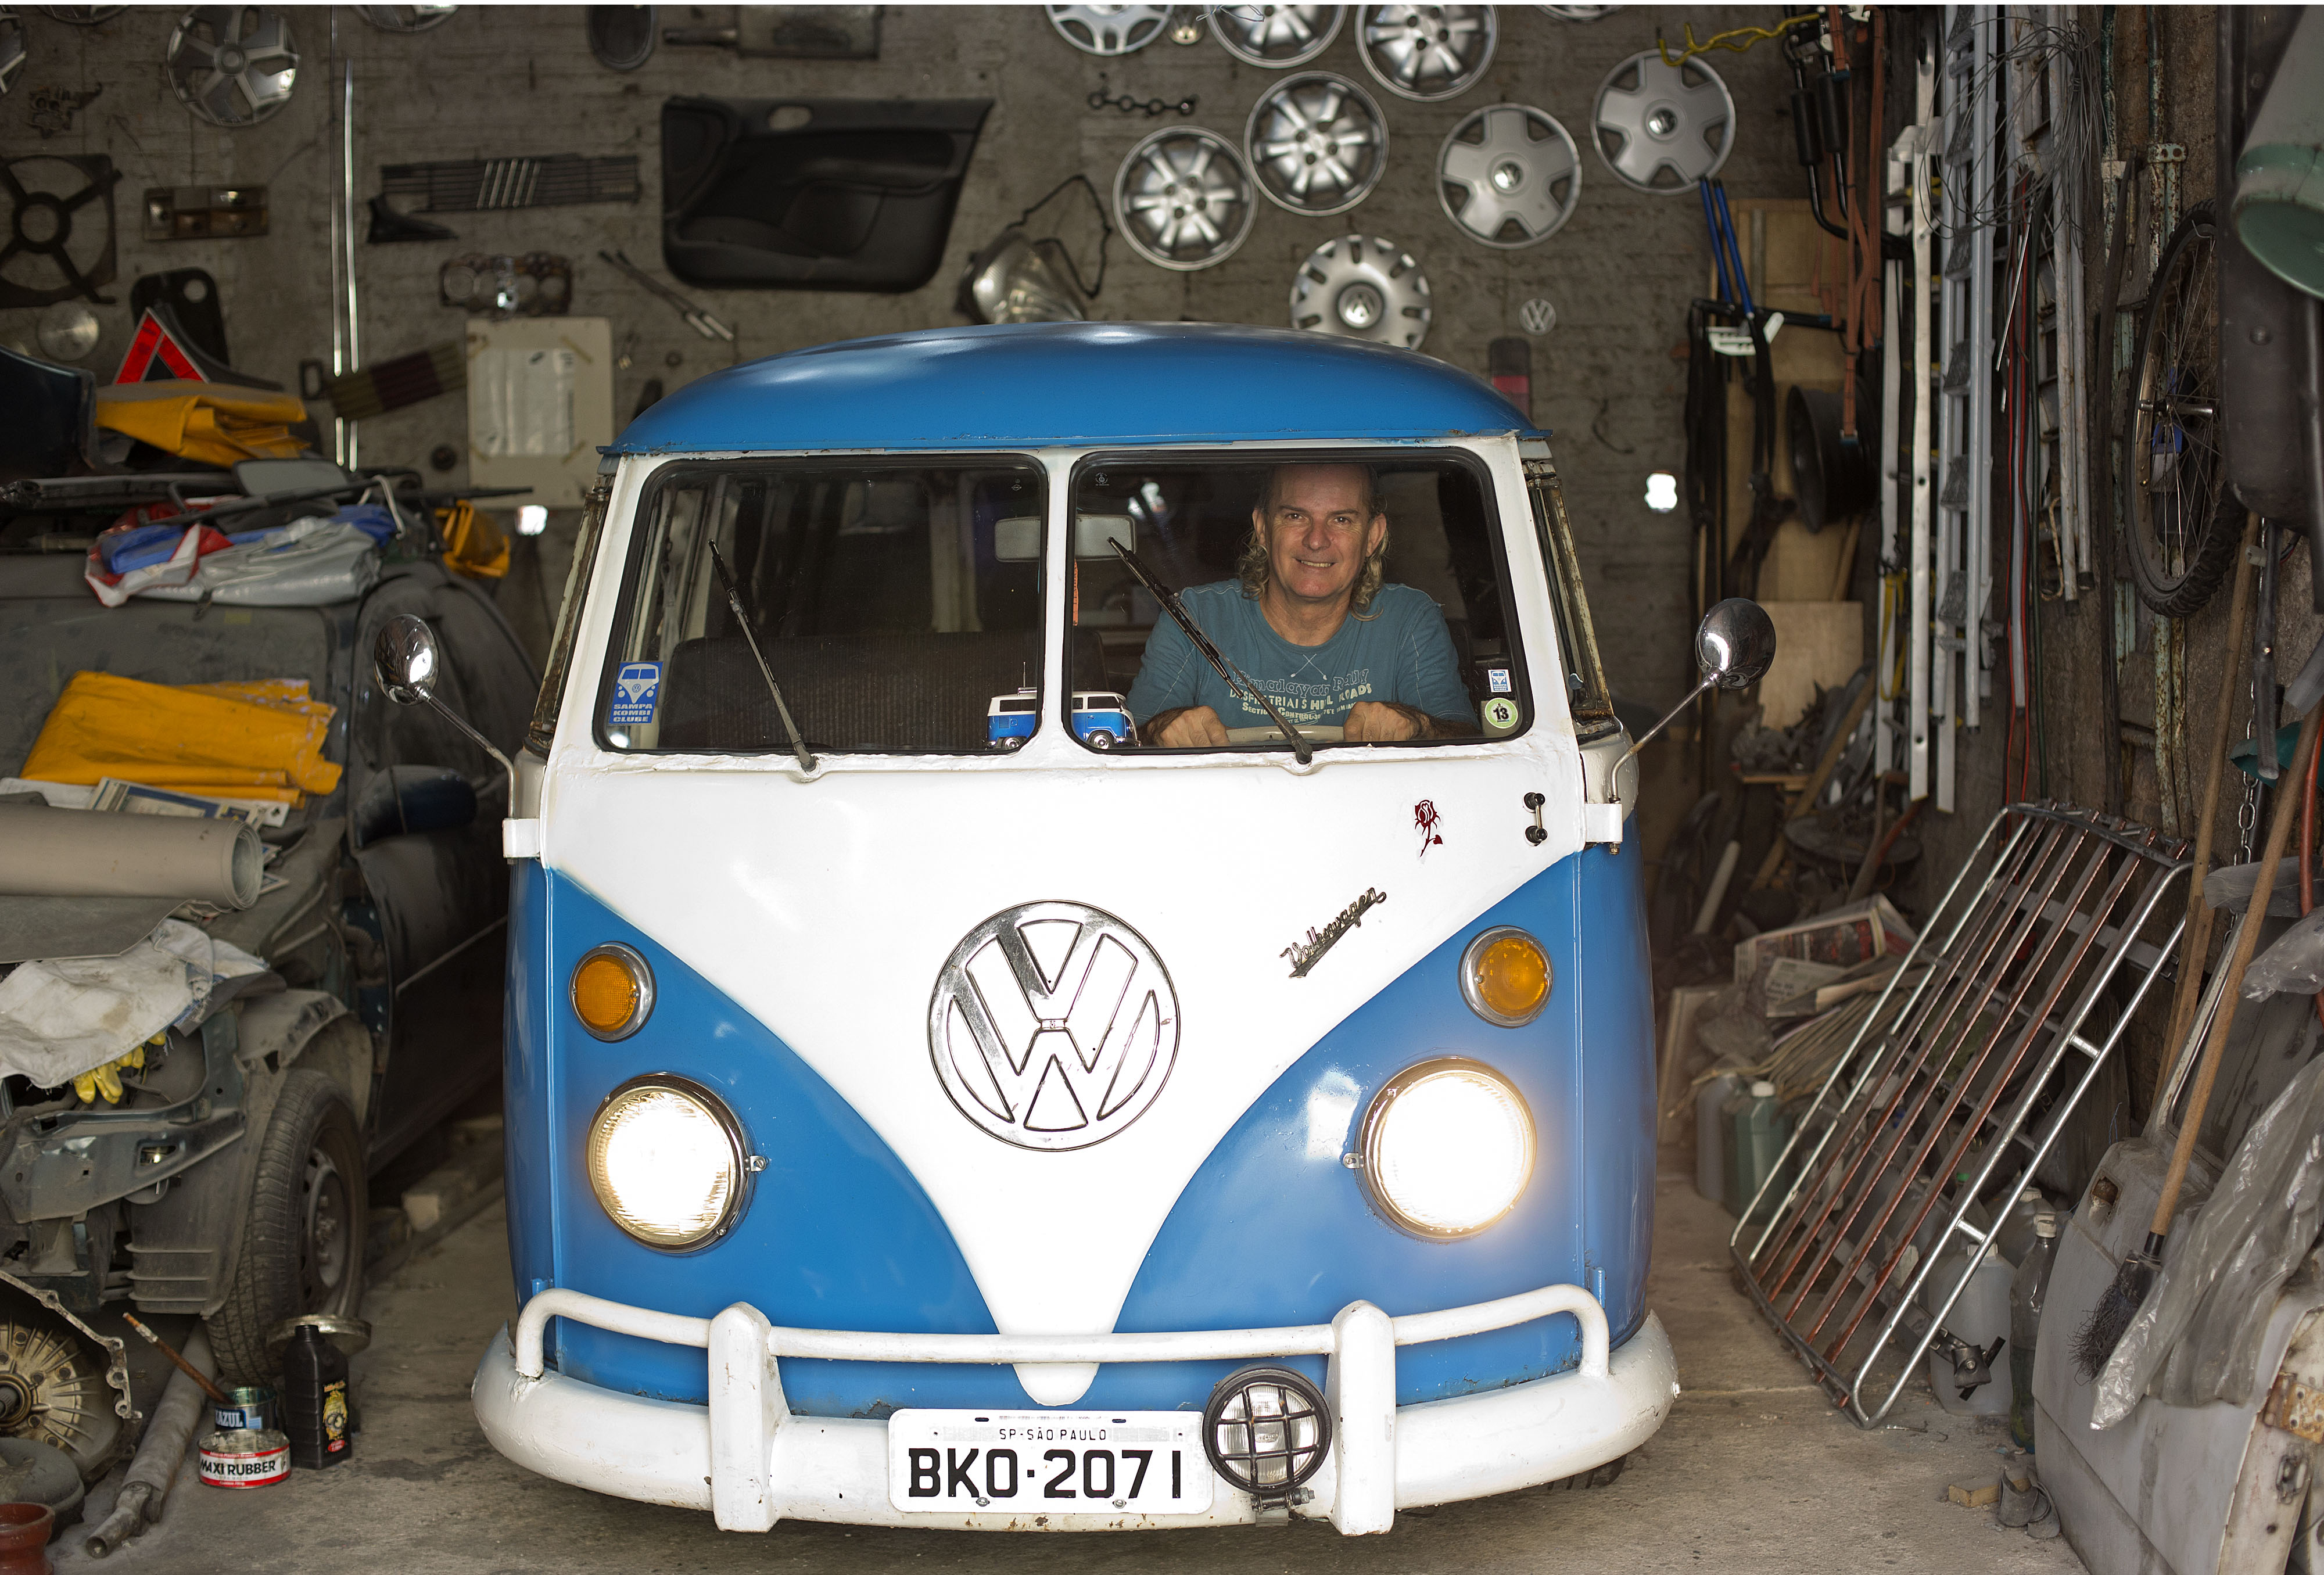 End of the road for the VW bus - Photo 1 - Pictures - CBS News